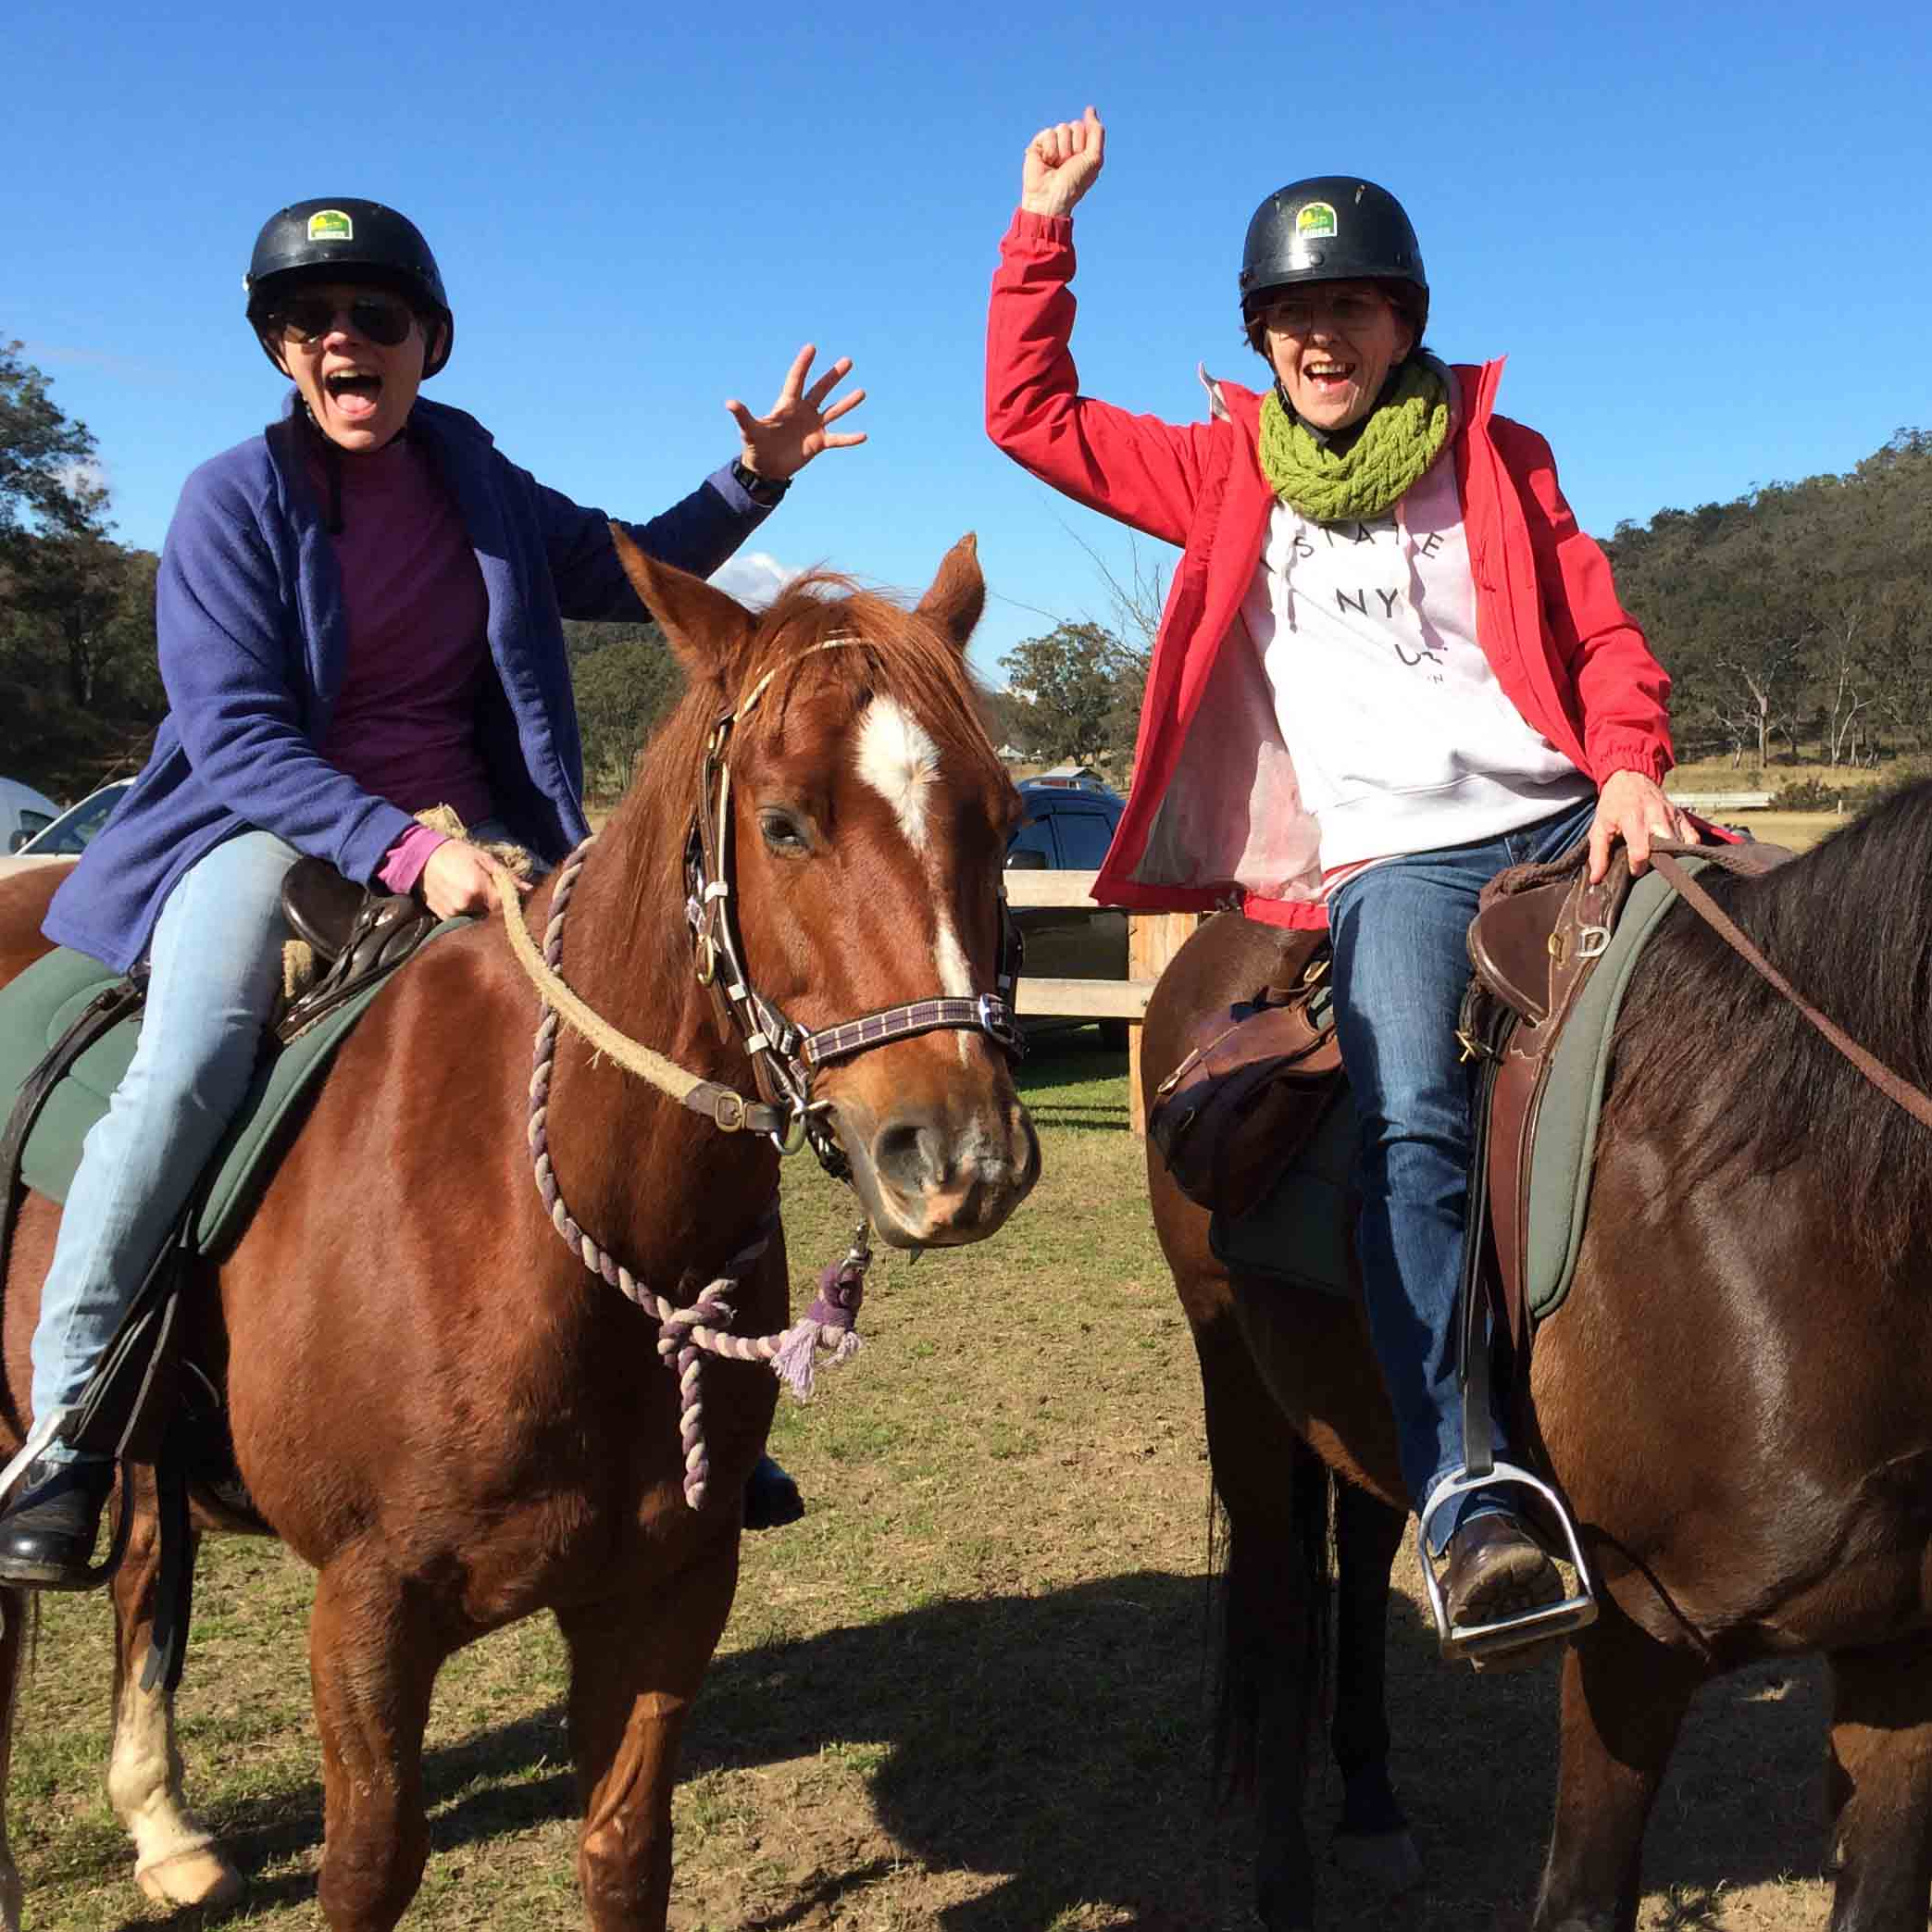 5 Reasons To Go Horse Riding Chapman Valley Horse Riding